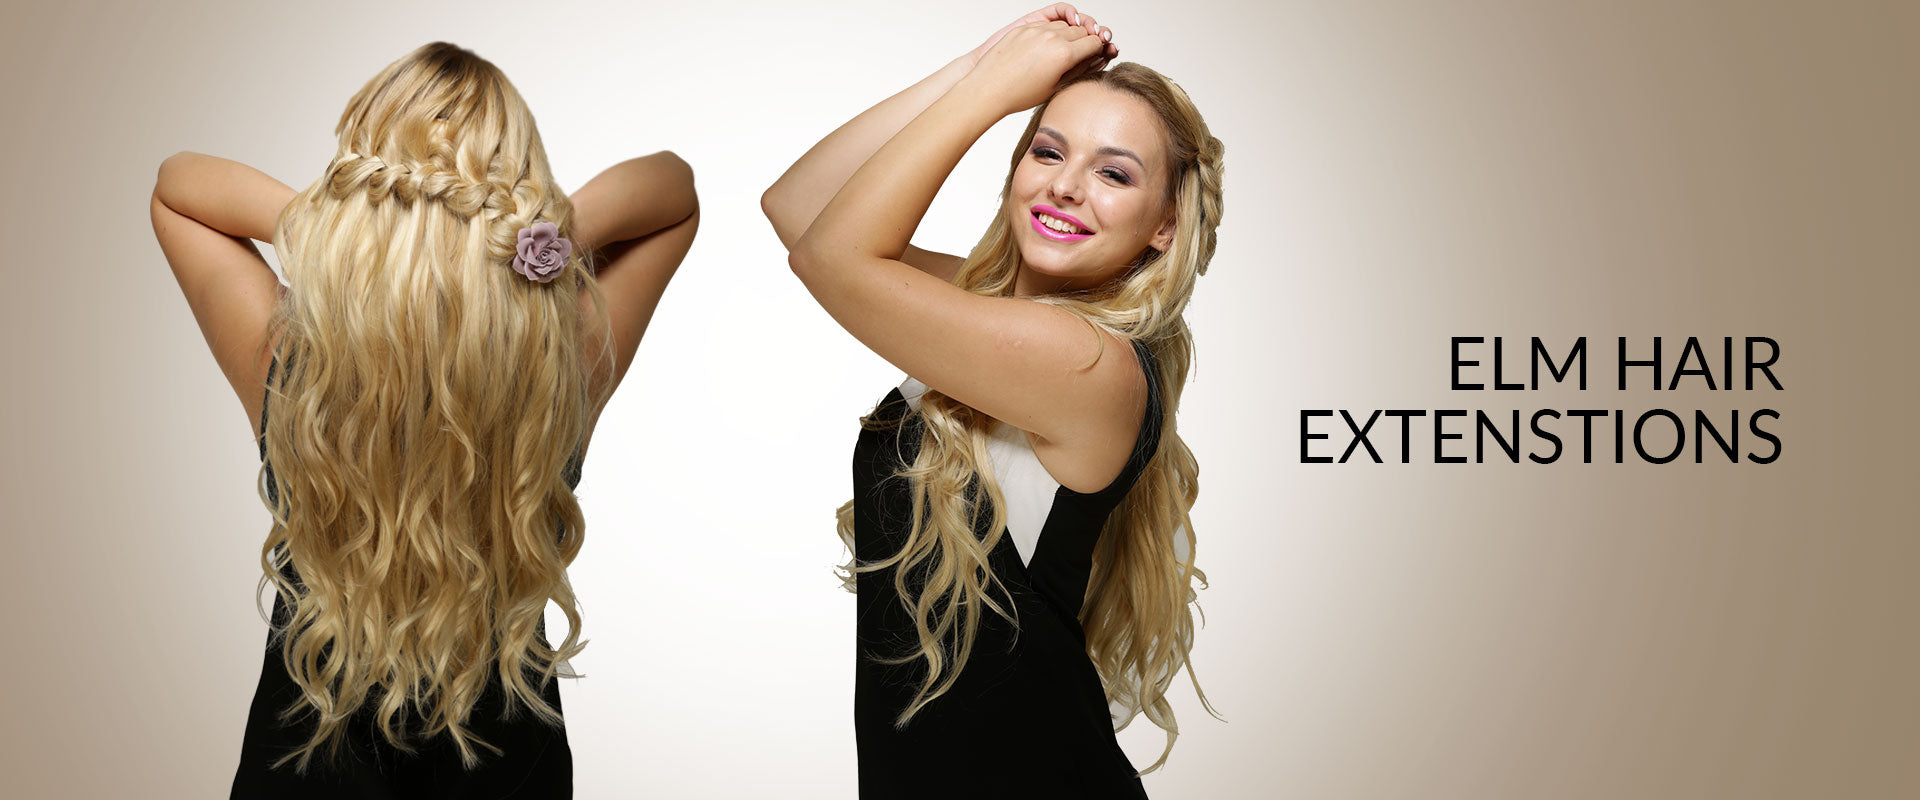 Pick The Right Type Of Hair Extensions For You Elm Hair